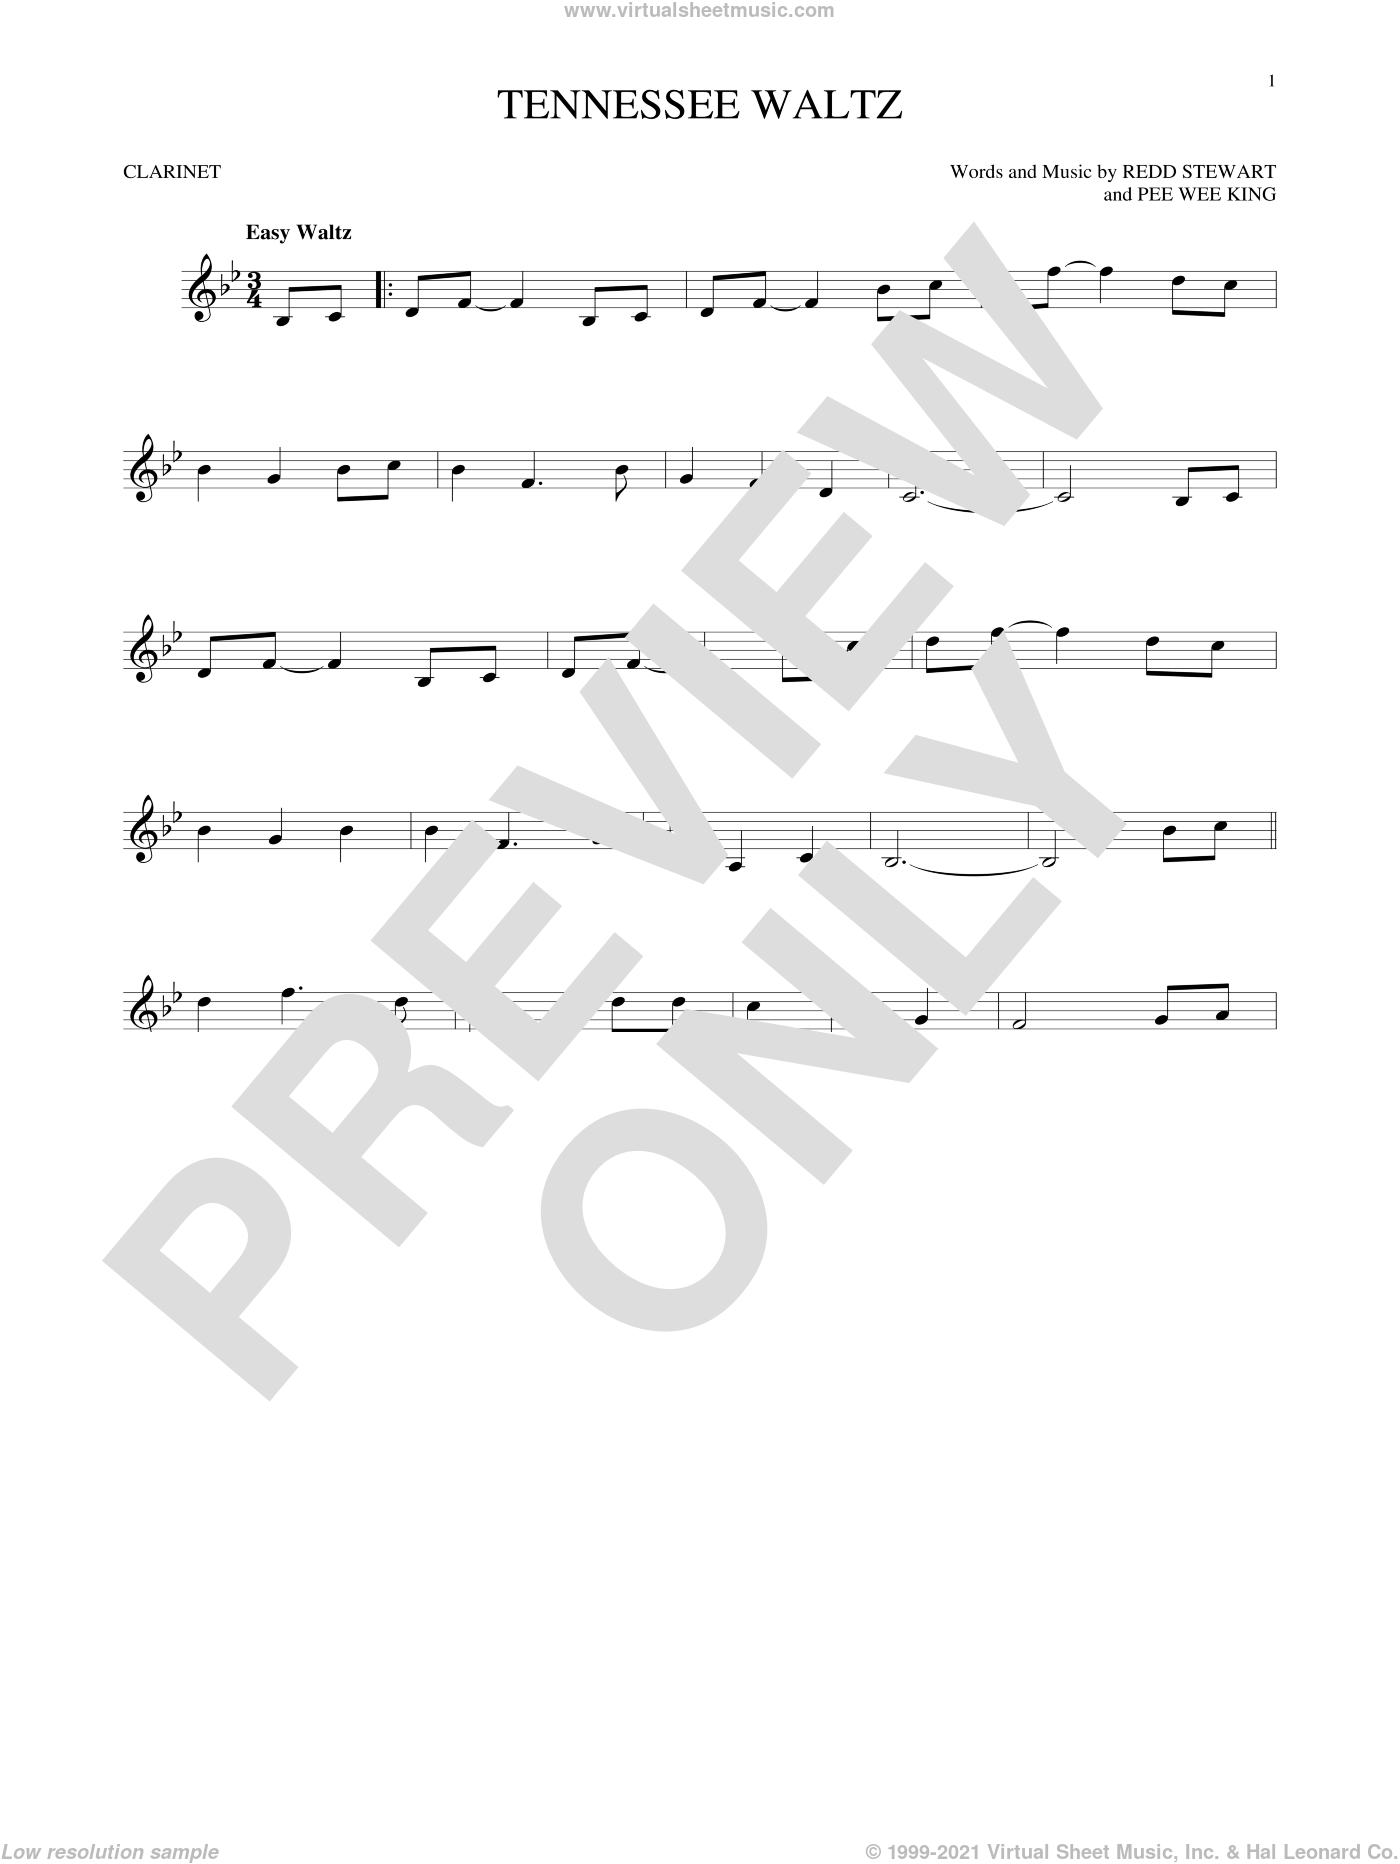 Tennessee Waltz sheet music for clarinet solo by Pee Wee King, Patti Page, Patty Page and Redd Stewart, intermediate skill level